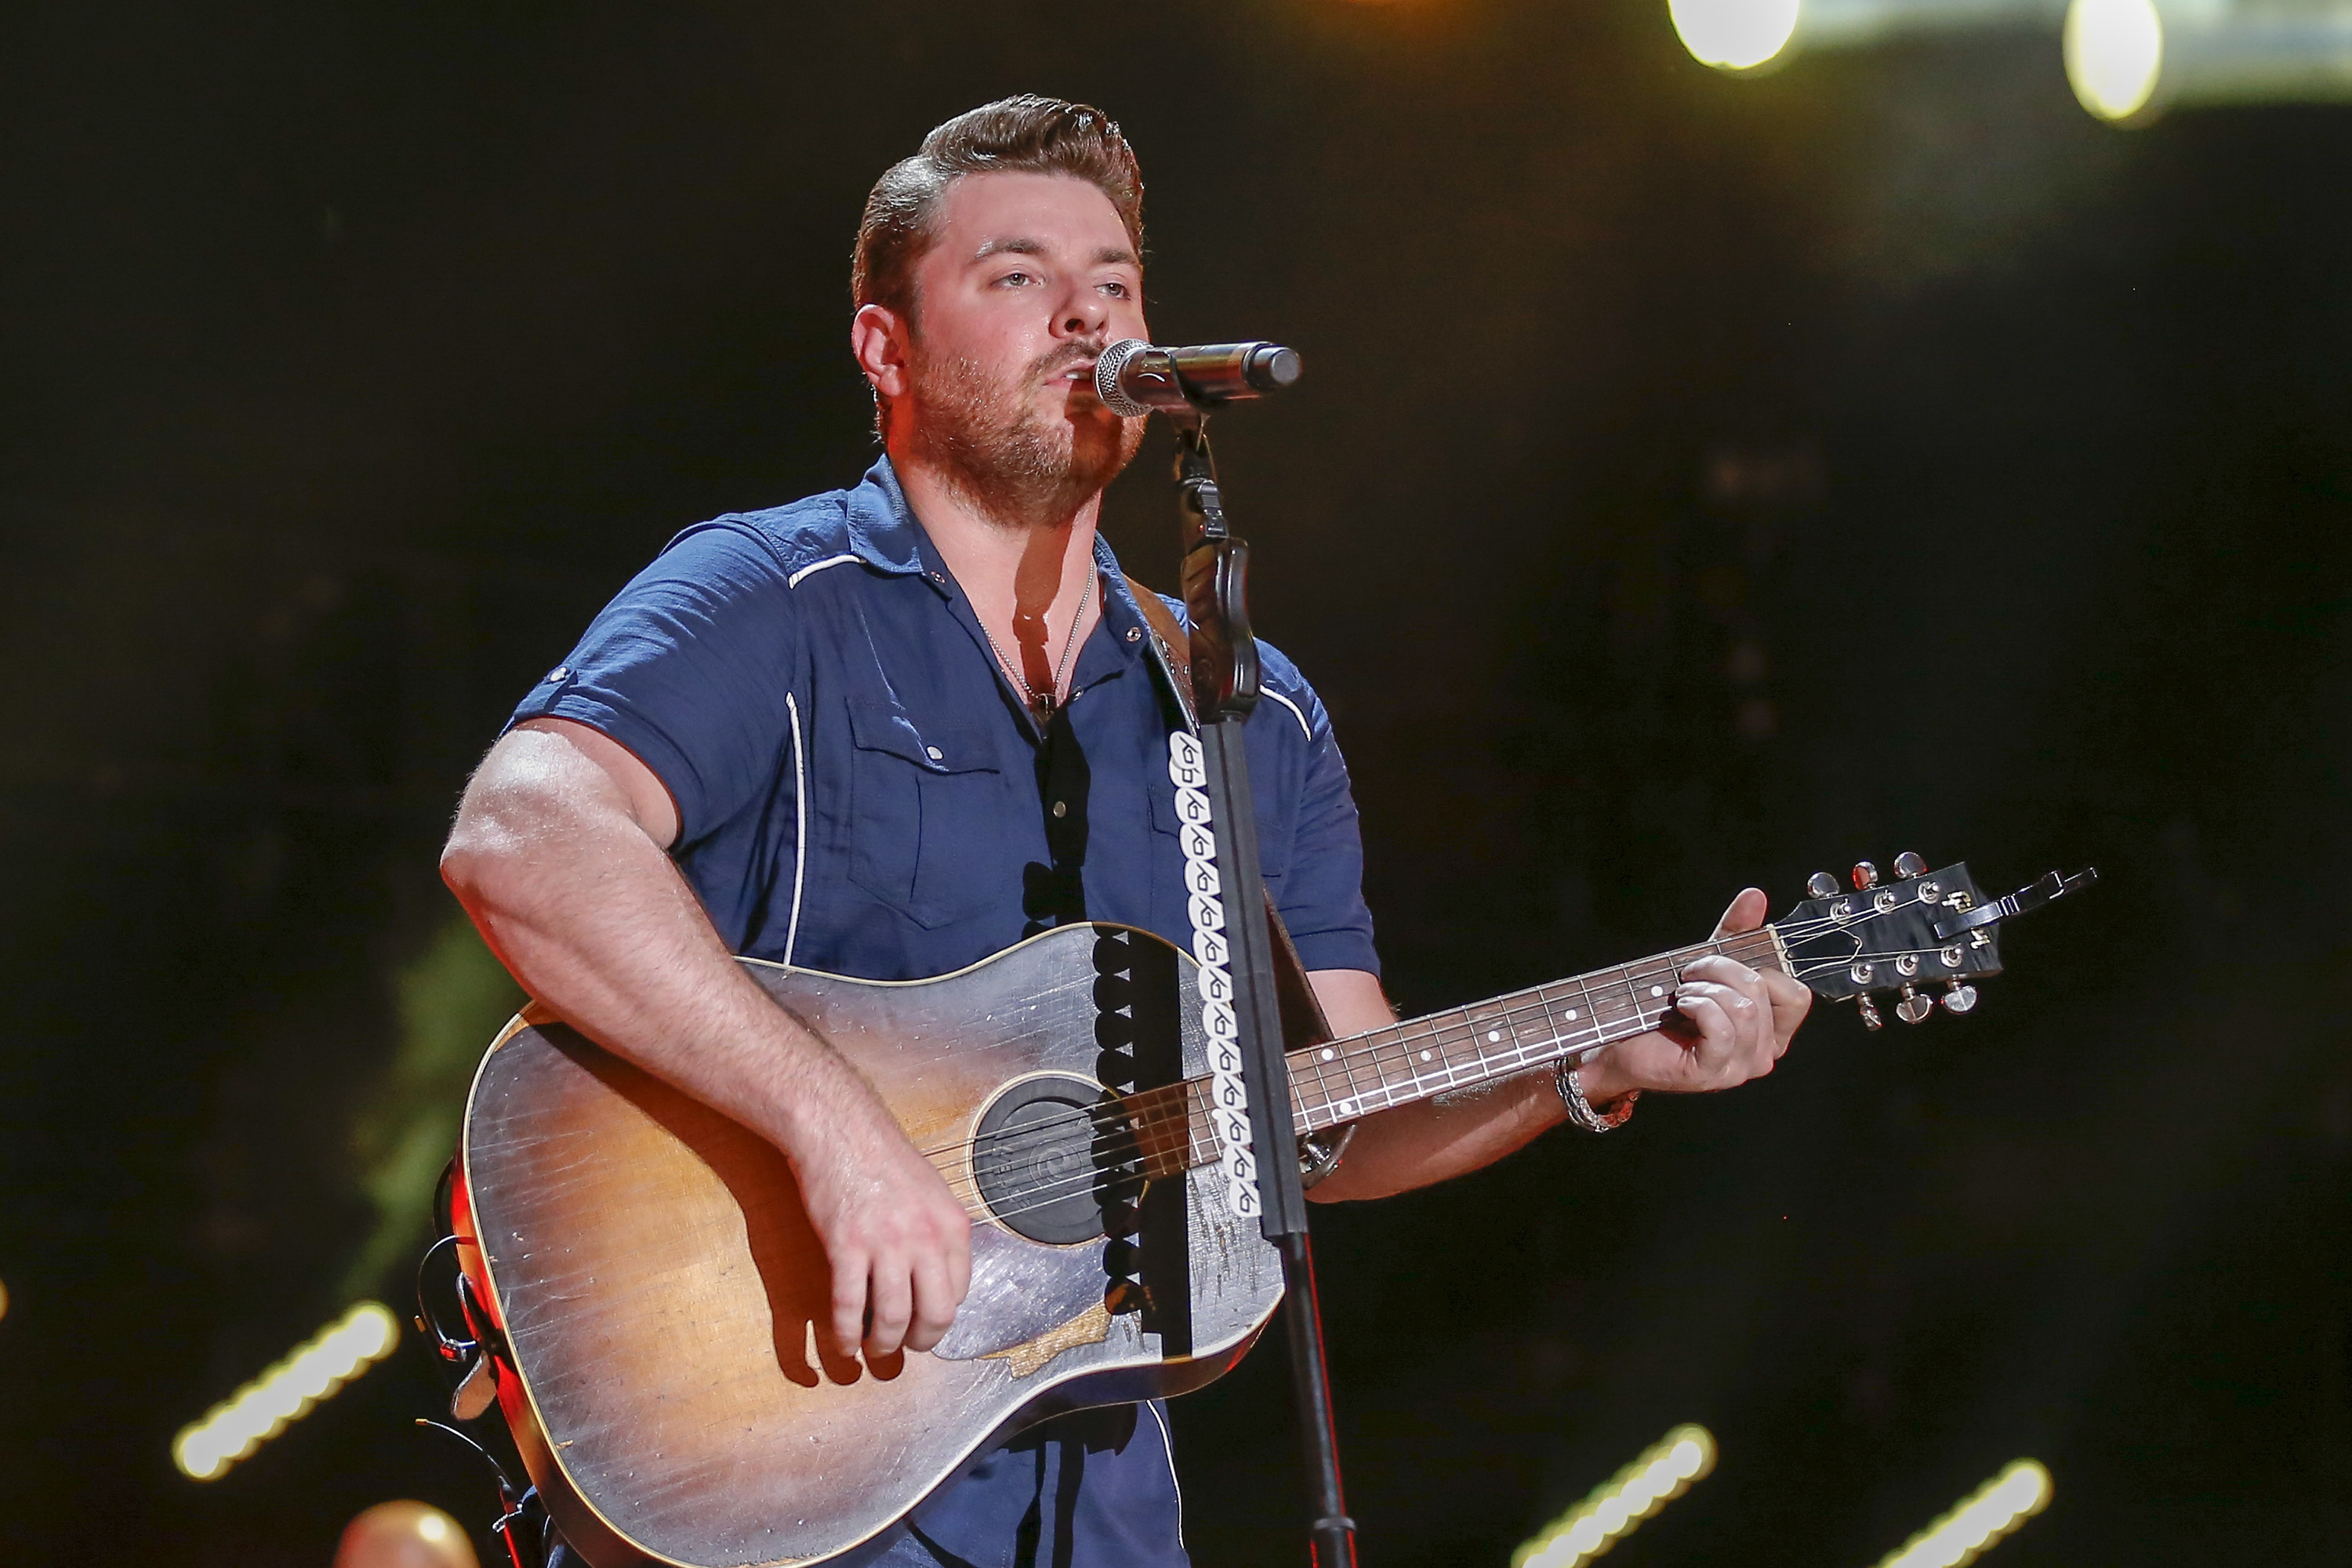 FILE - In this Saturday, June 11, 2016, file photo, Chris Young performs at the CMA Music Festival at Nissan Stadium in Nashville, Tenn. Young is donating $100,000 for disaster relief efforts in Texas. Nashville-based Monarch Publicity said in a news release that Young lived in Arlington, Texas, before signing with RCA records and has family and close friends in Hurricane Harvey's path. (Photo by Al Wagner/Invision/AP, File)